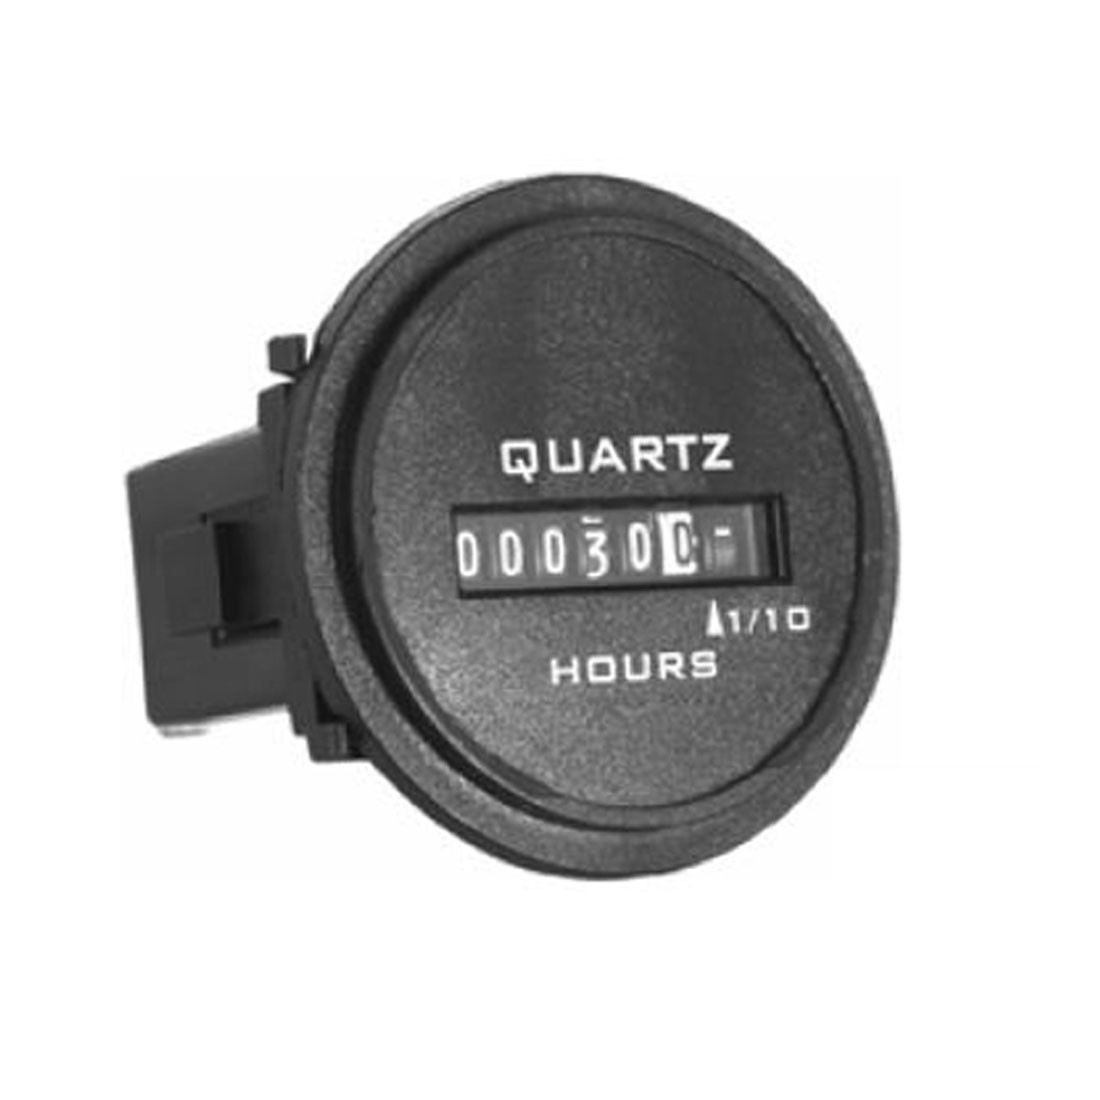 722 Analog Hour Meter Series